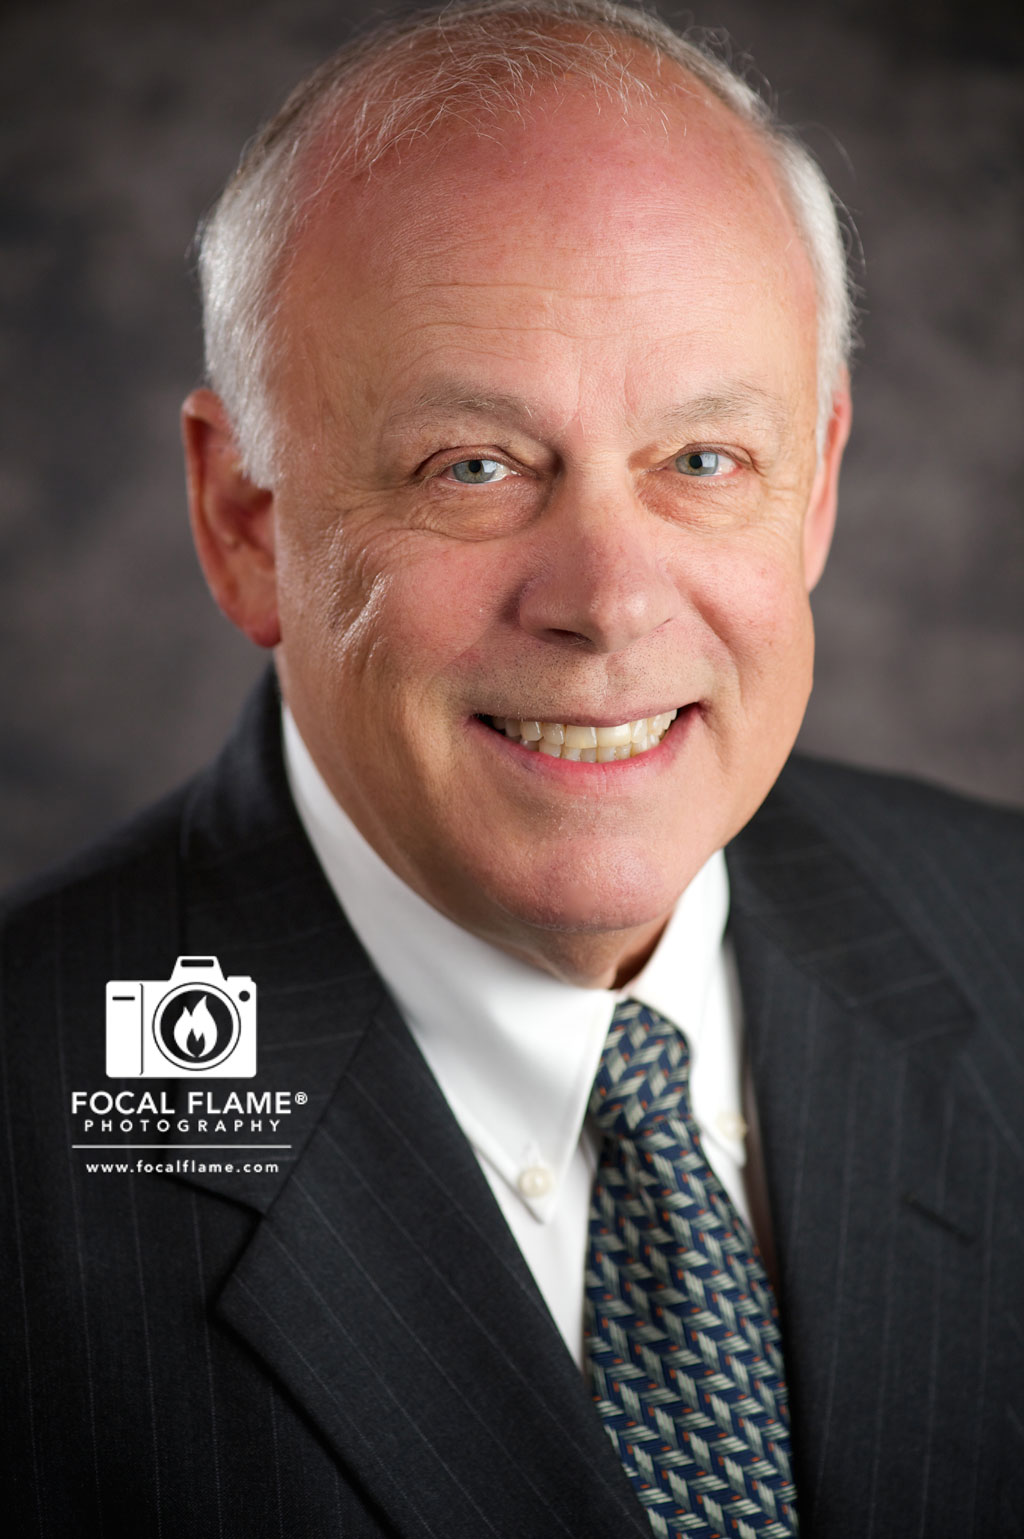 We were honored to provide headshot photography services to J. H. Findorff & Son Inc., the construction firm behind such iconic Madison region buildings as Monona Terrace Convention Center, the Madison Central Library, Epic Farm Campus, and Epic Prairie Campus.